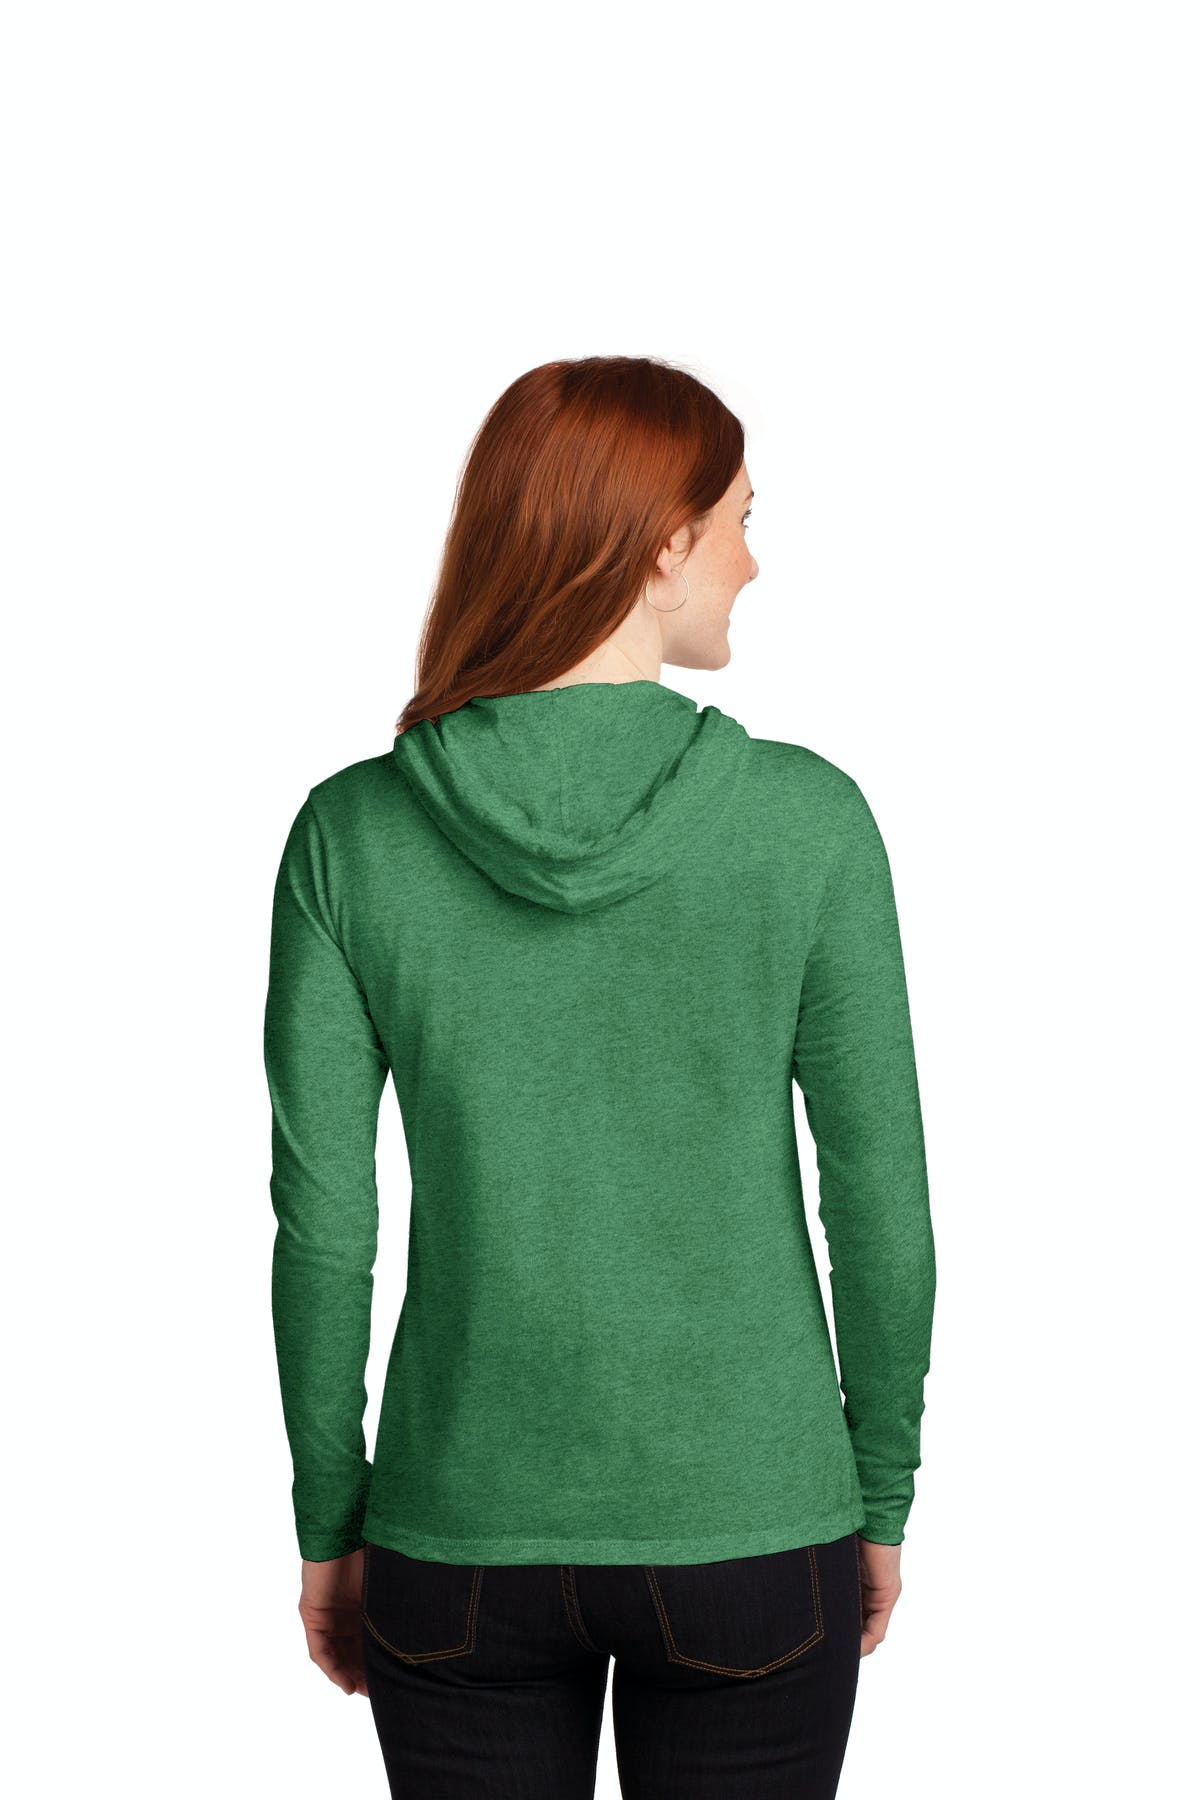 Anvil® Ladies 100% Combed Ring Spun Cotton Long Sleeve Hooded T-Shirt - sold by PRINT CITY GRAPHICS, INC